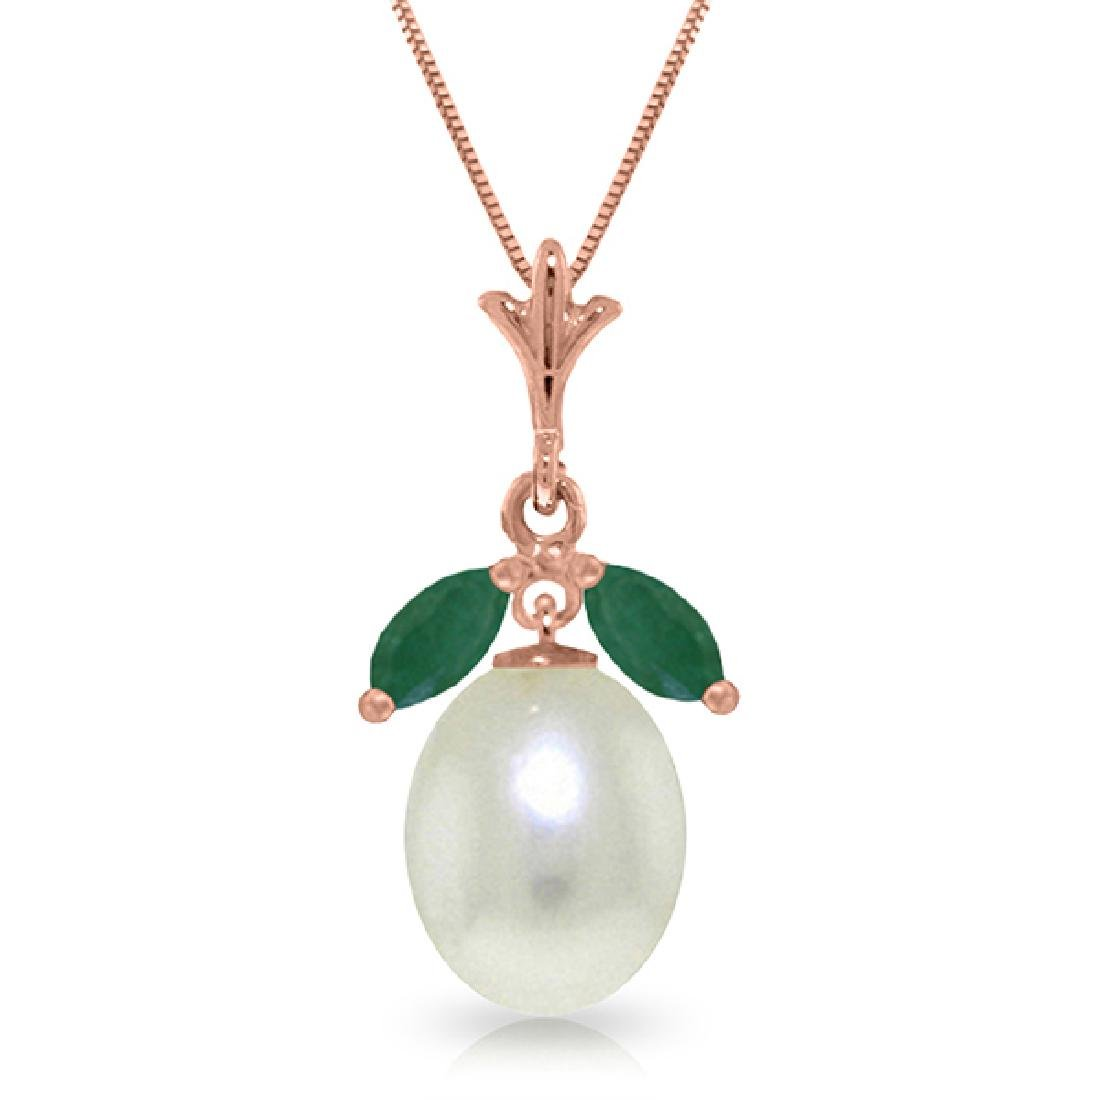 Genuine 4.5 ctw Pearl & Emerald Necklace Jewelry 14KT